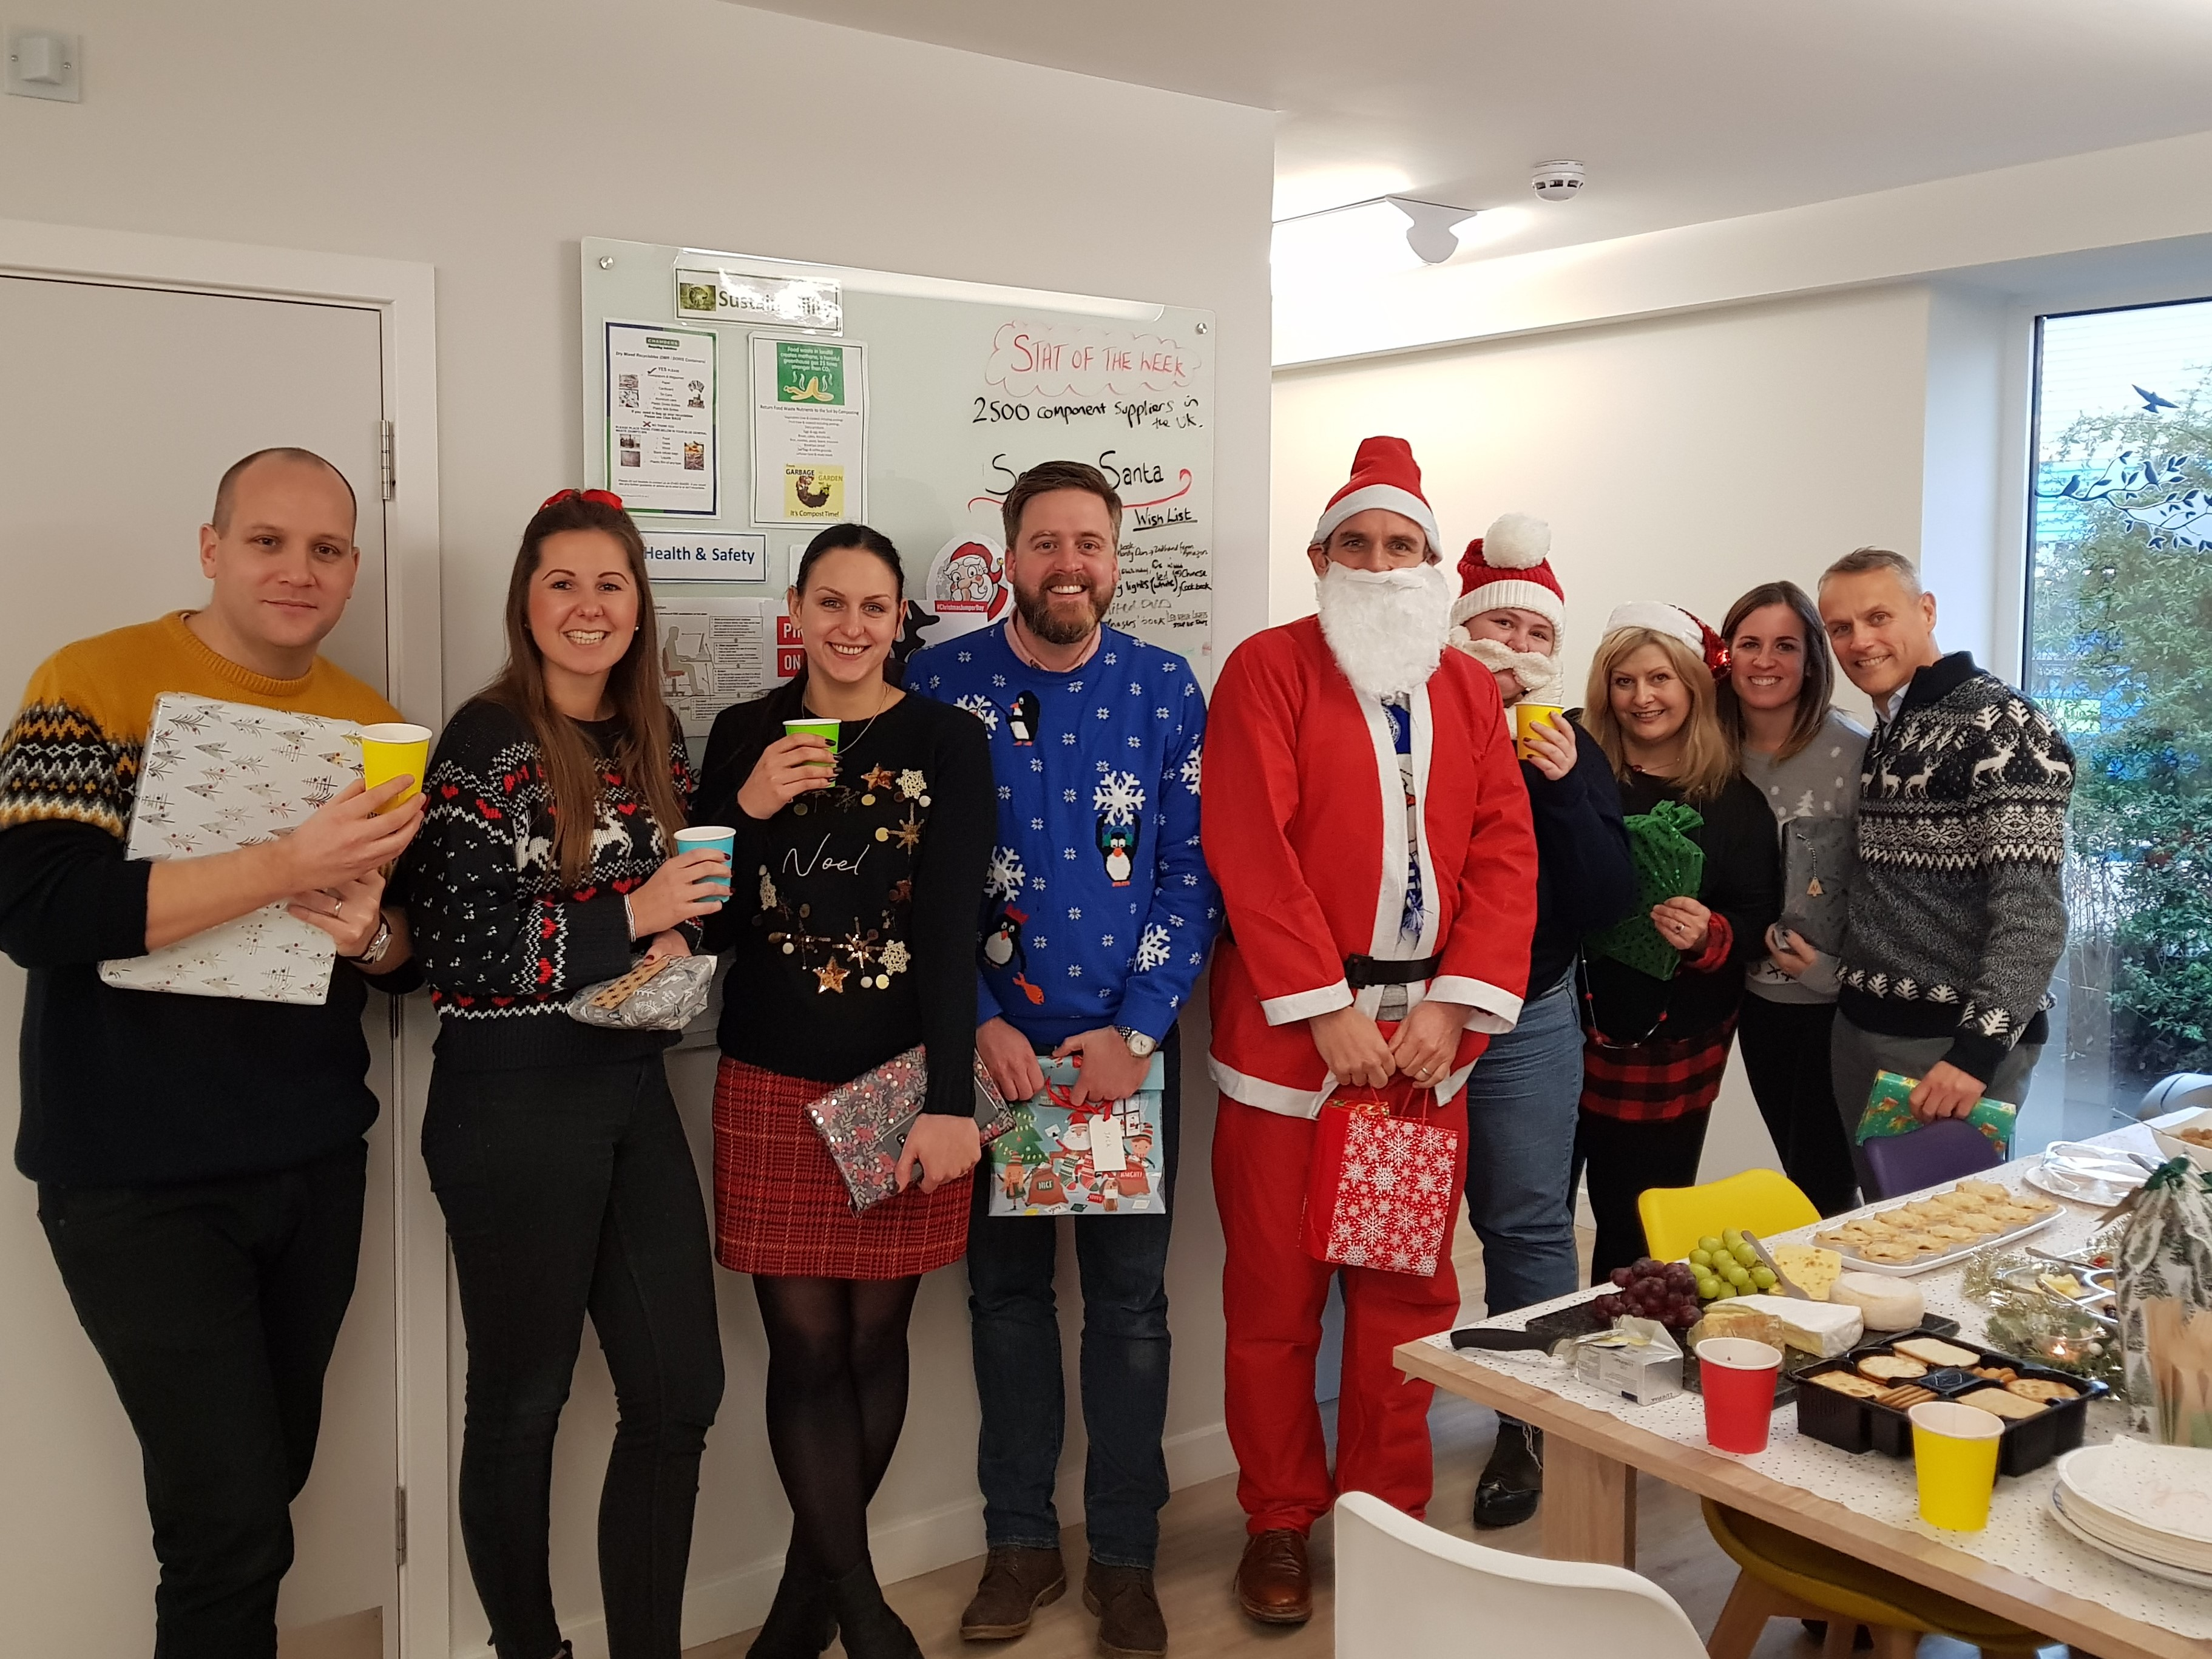 Christmas Jumper Day Team Photo